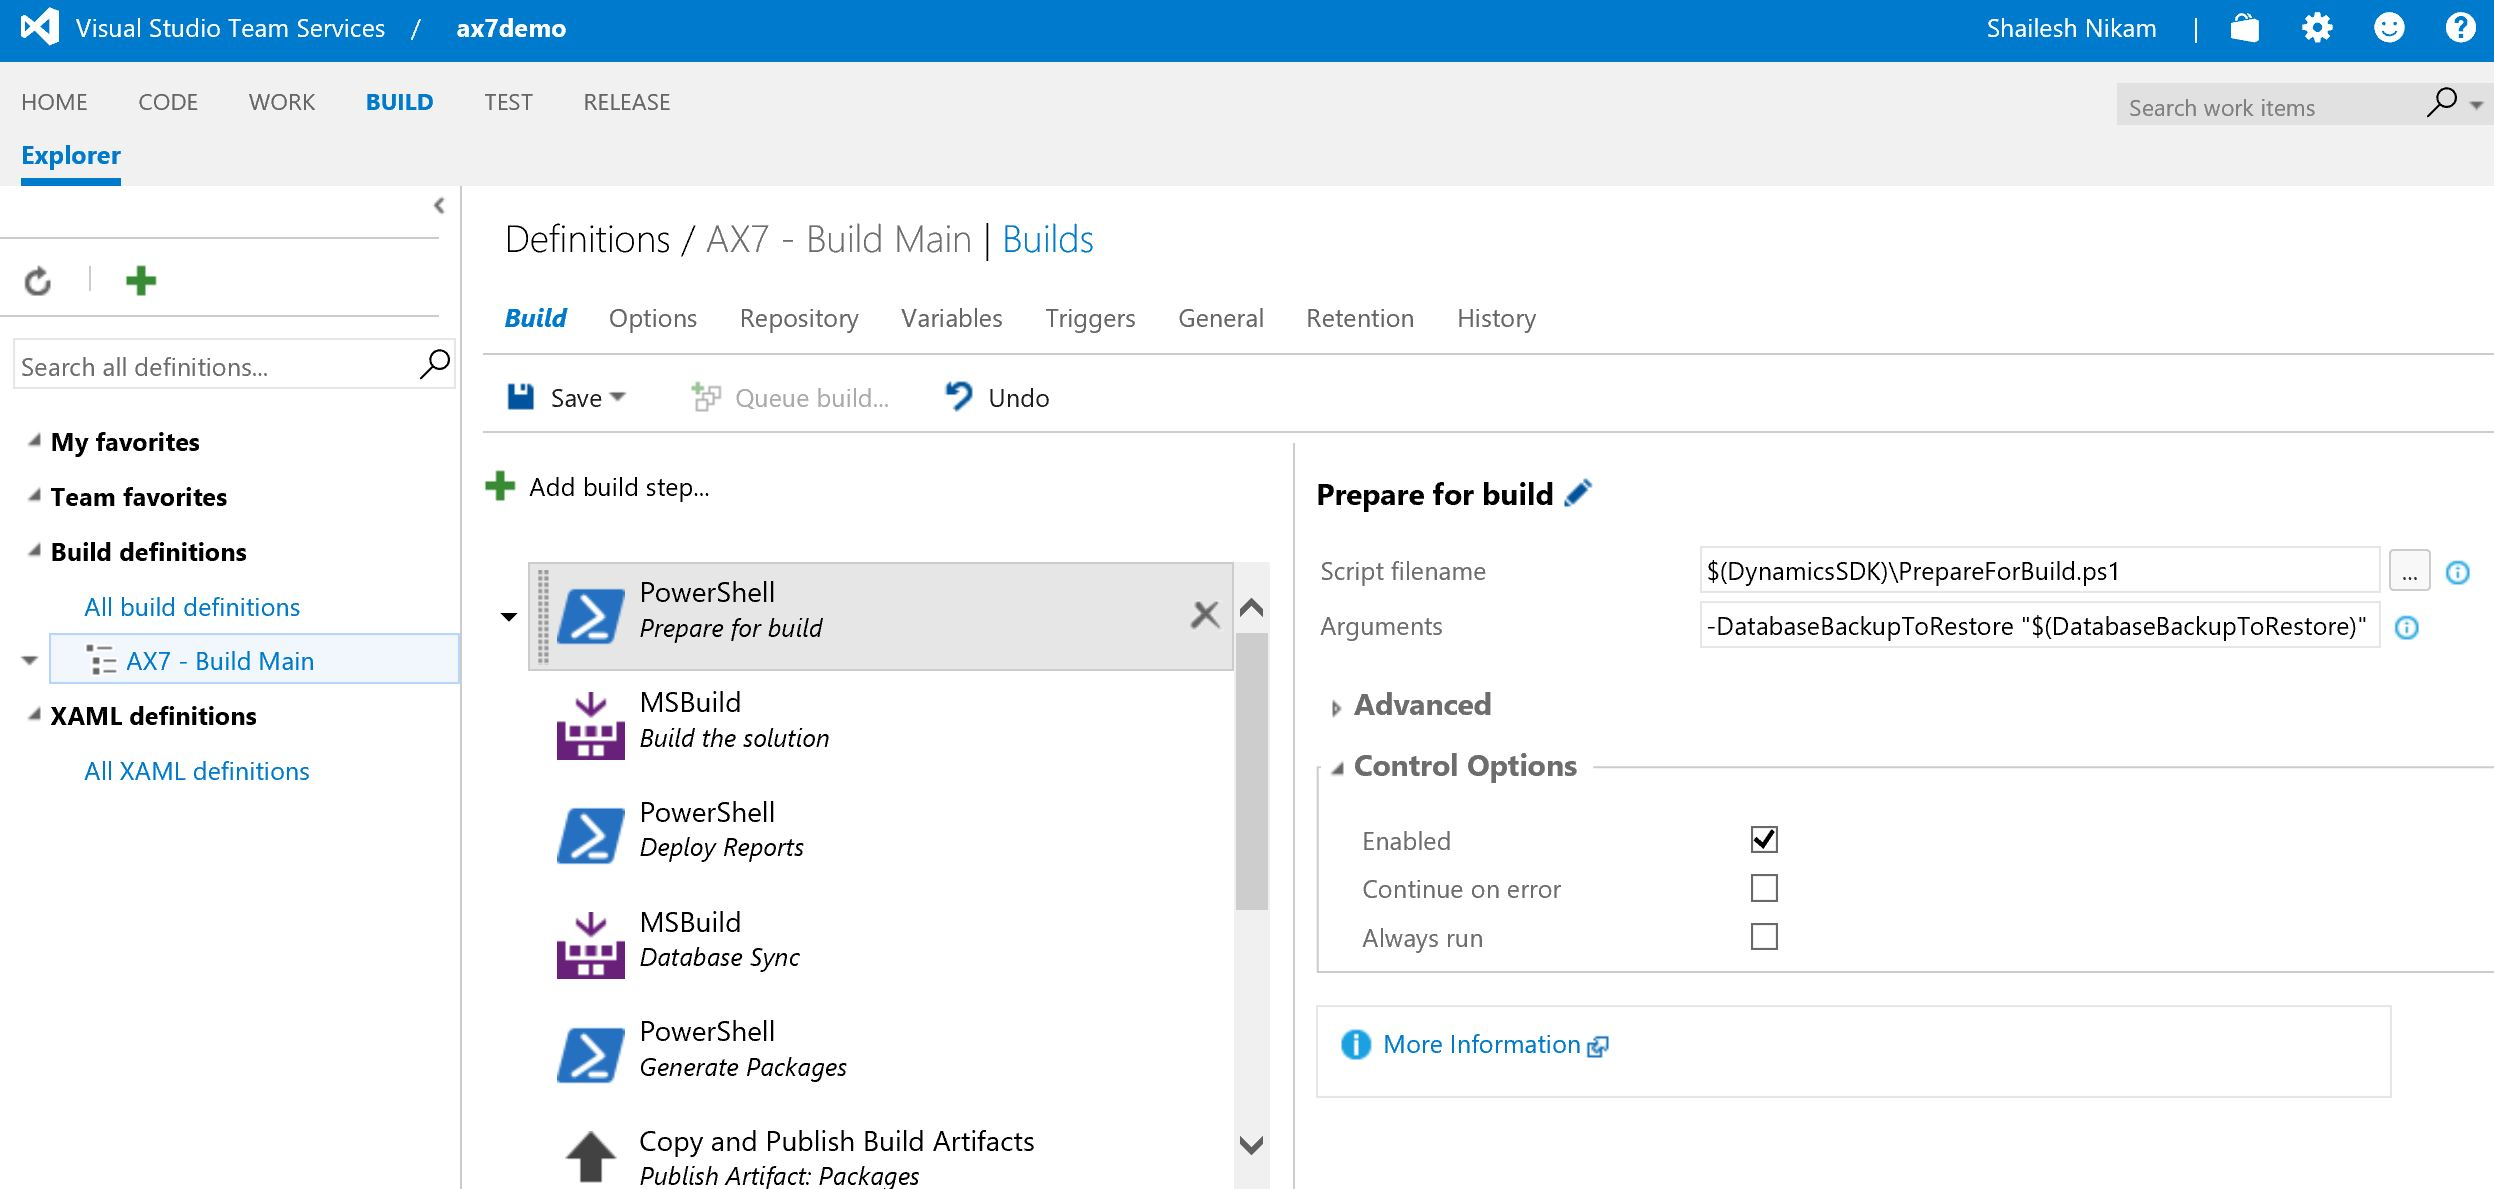 isofmediumbuild_when you deploy the build vm, the build agent is configured by